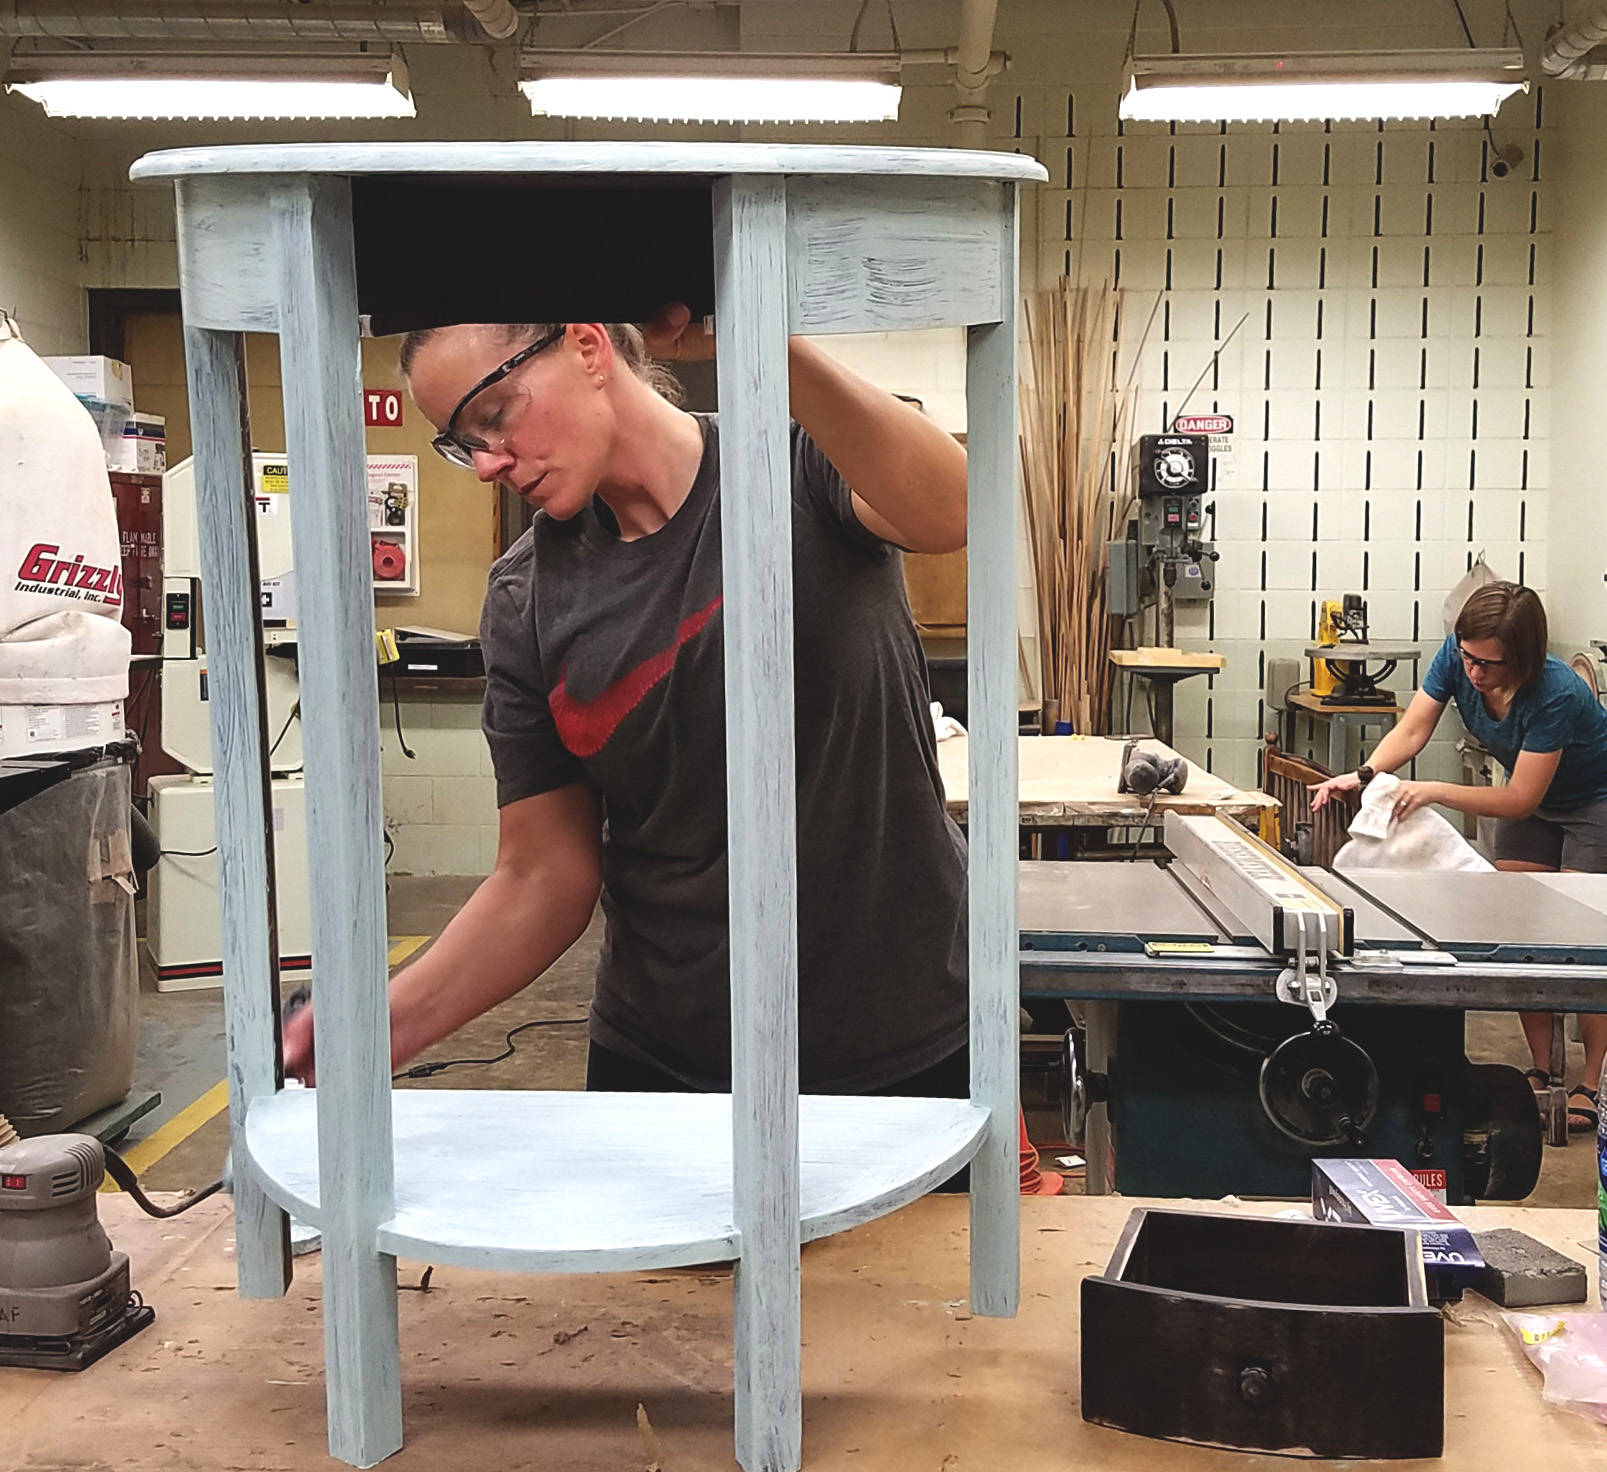 discover a new skill - From framing to woodworking, painting to car care,the Skills Center is here to help.Create one-of-a-kind pieces, learn + grow with an instructor-led class, and so much more.Find us on Facebook today!